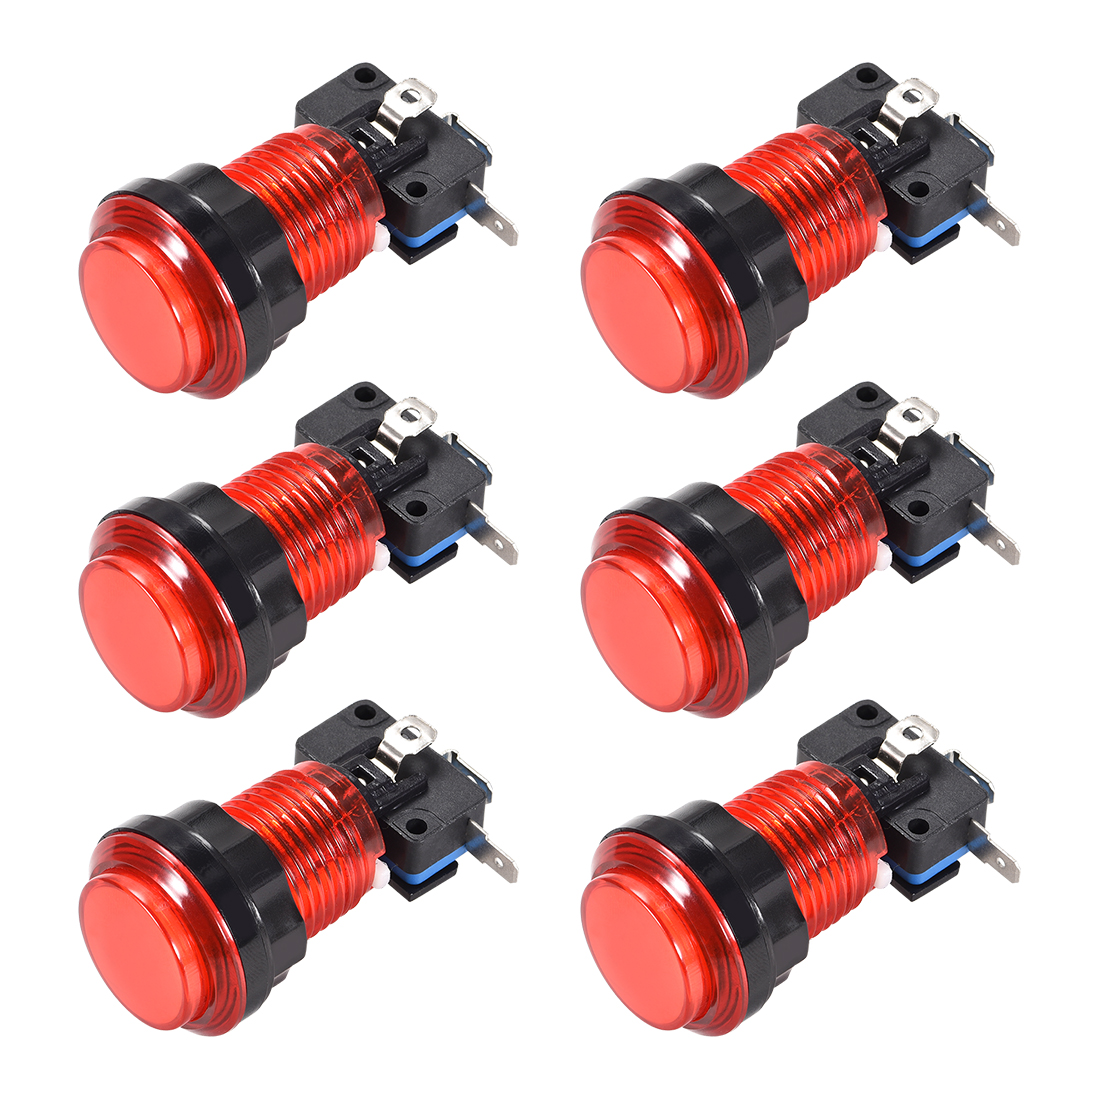 Game Push Button 33.5mm 12V LED Illuminated Switch with Micro switch Red 6pcs